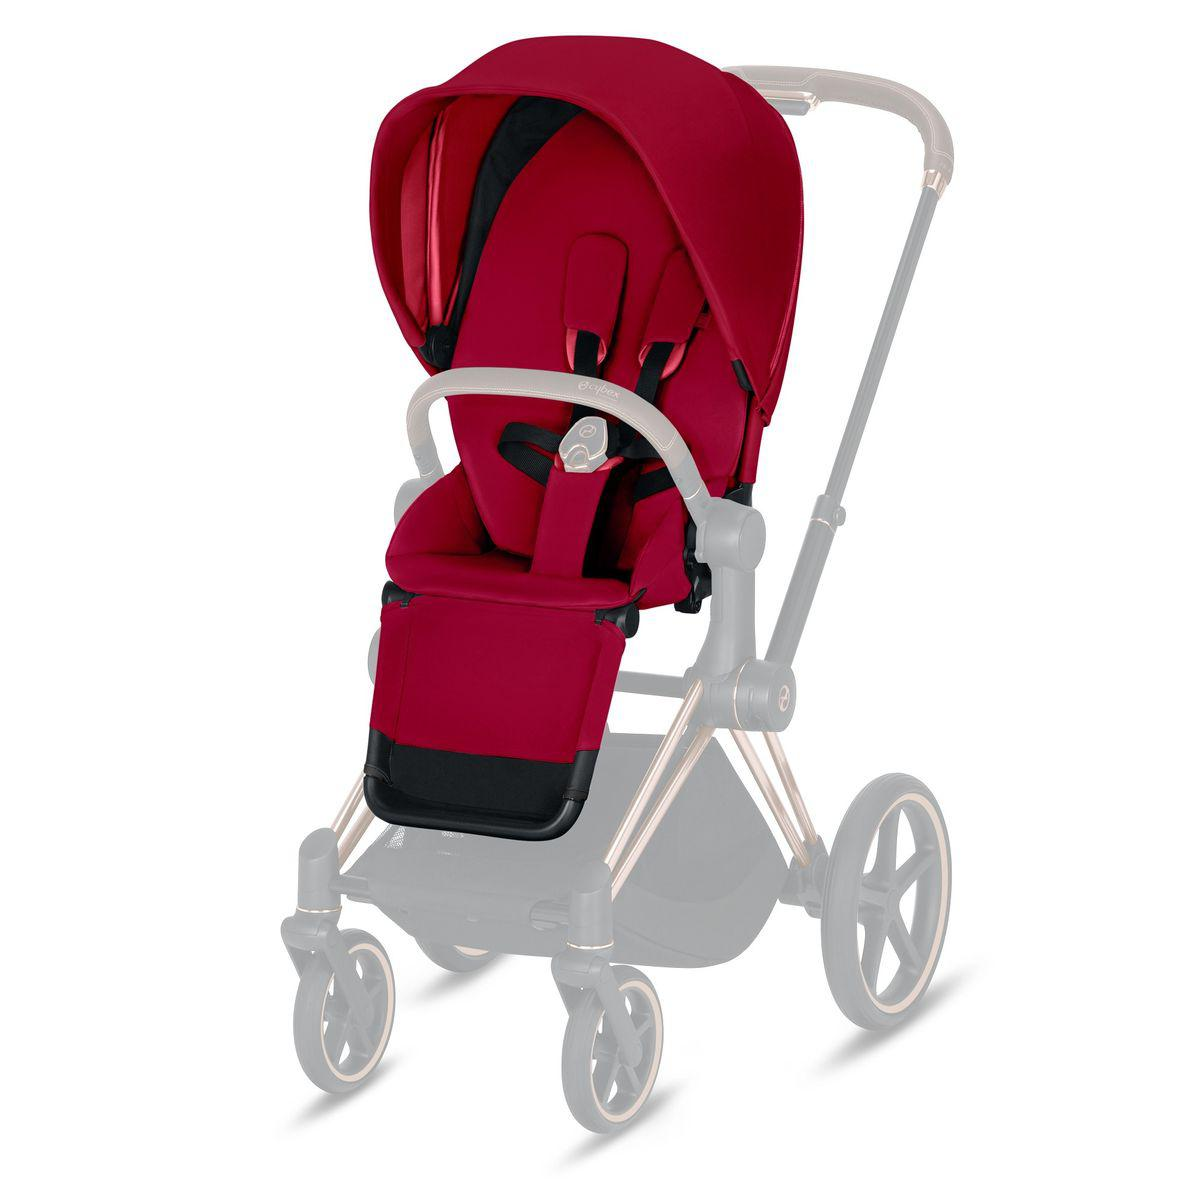 Assise-habillage poussette PRIAM Cybex true red-red